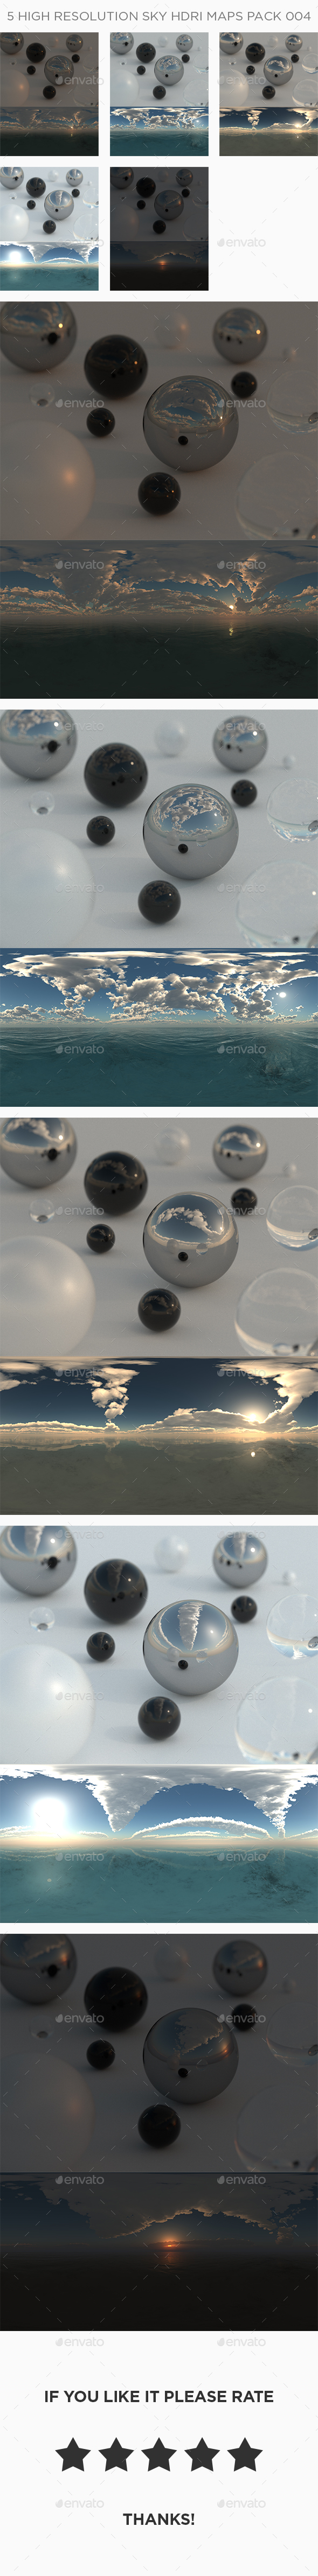 5 High Resolution Sky HDRi Maps Pack 004 - 3DOcean Item for Sale